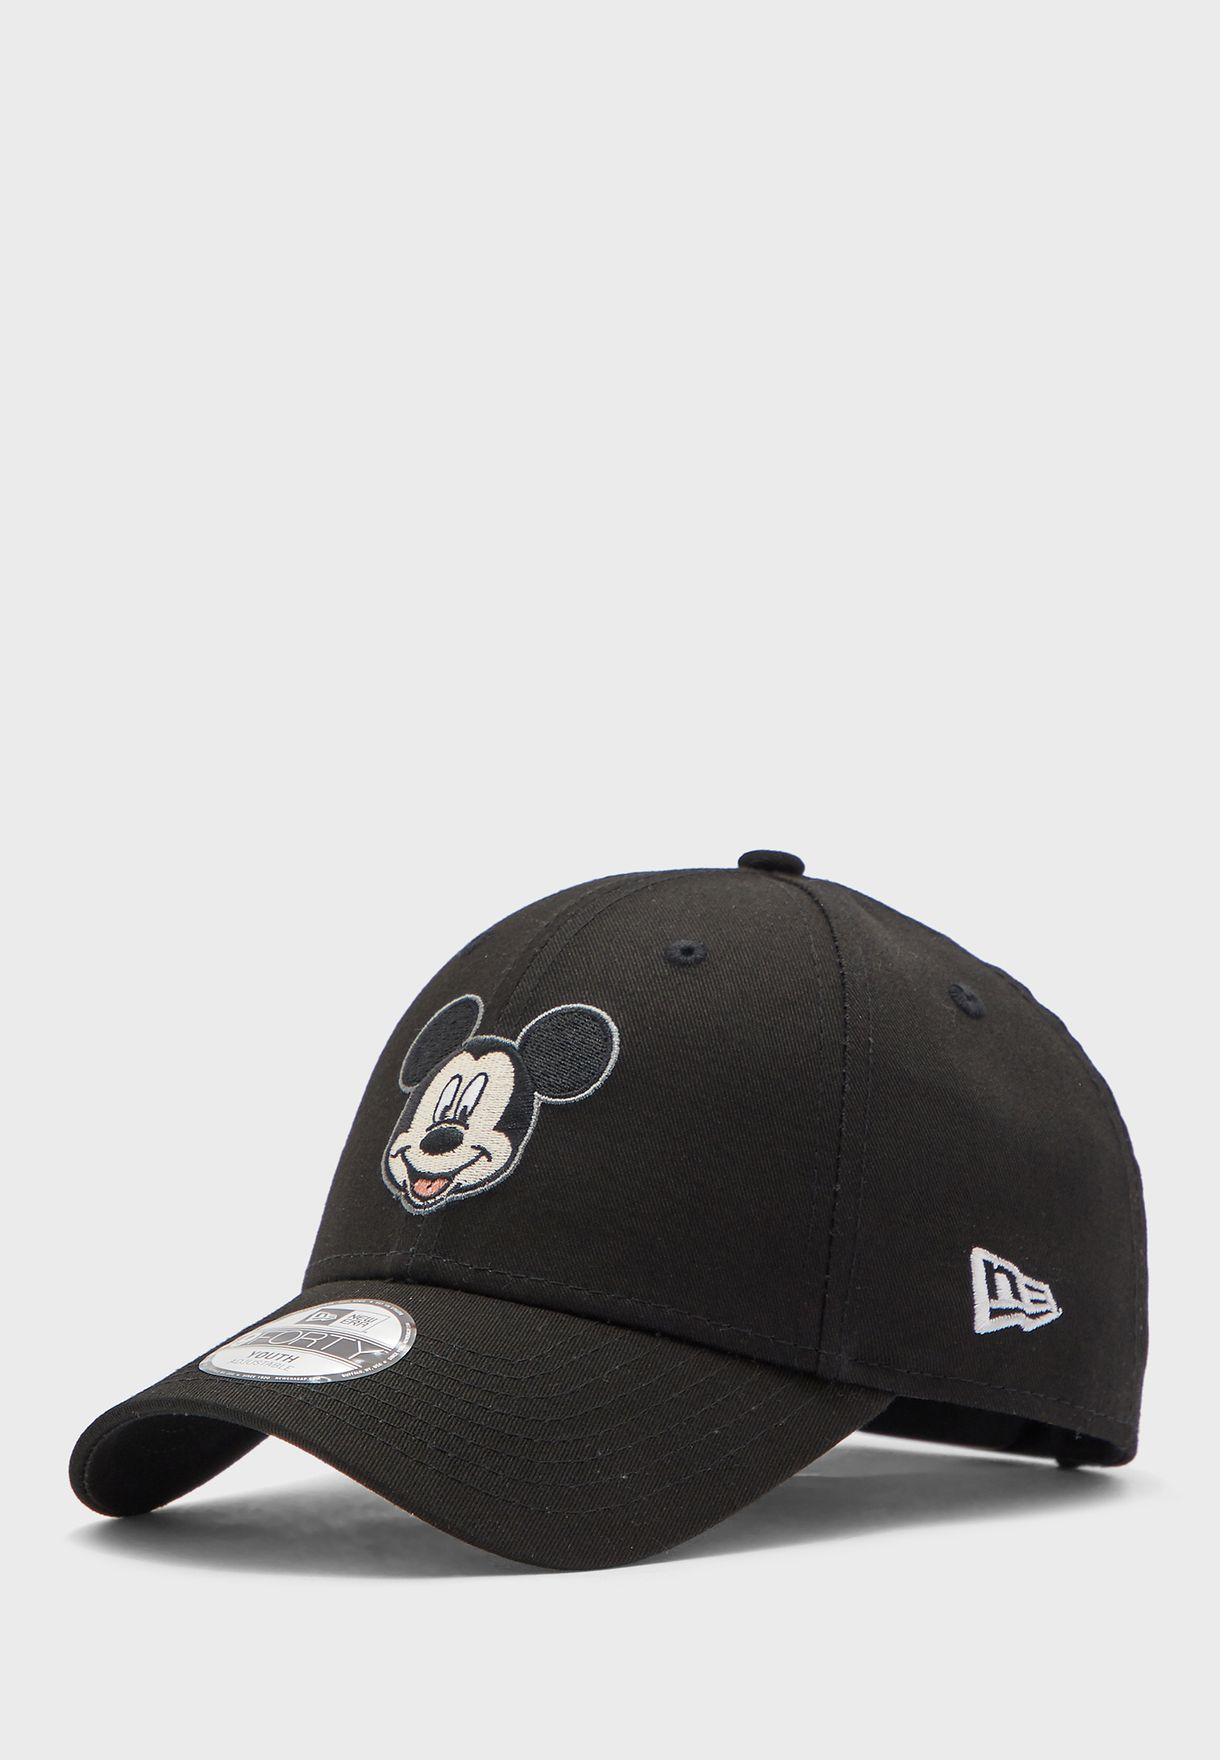 Youth 9Forty Minnie Mouse Cap